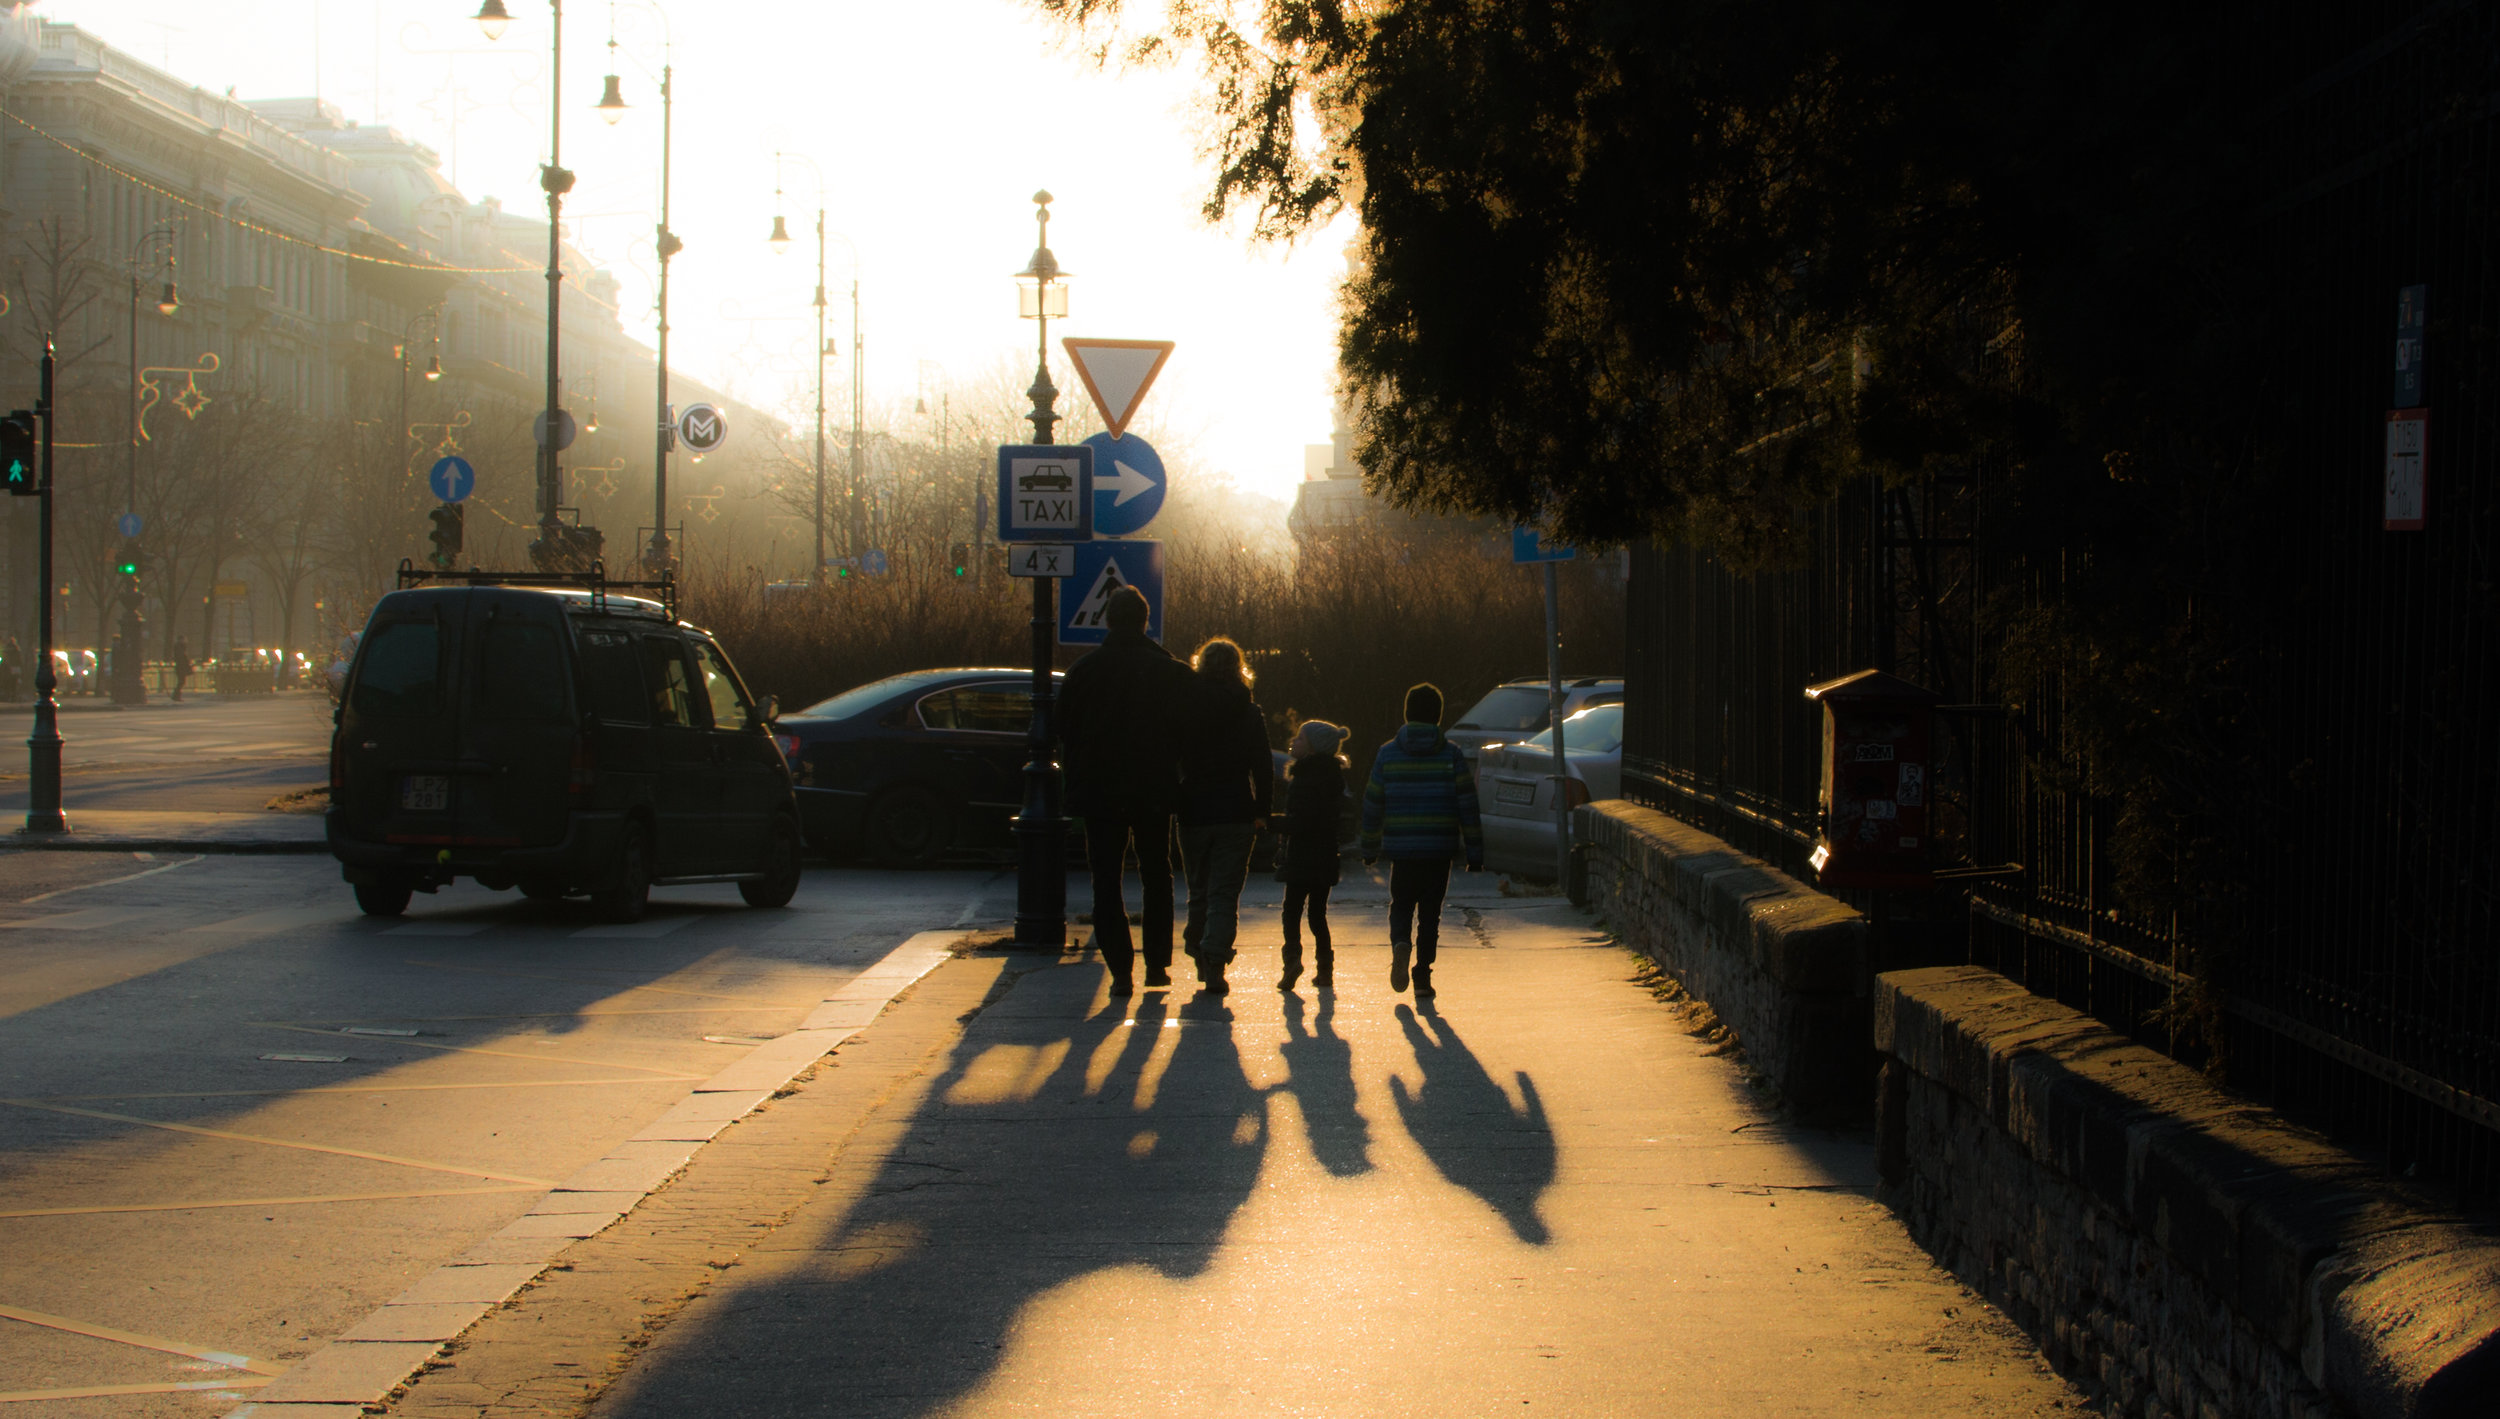 A Family Walks in Budapest - Budapest, Hungary